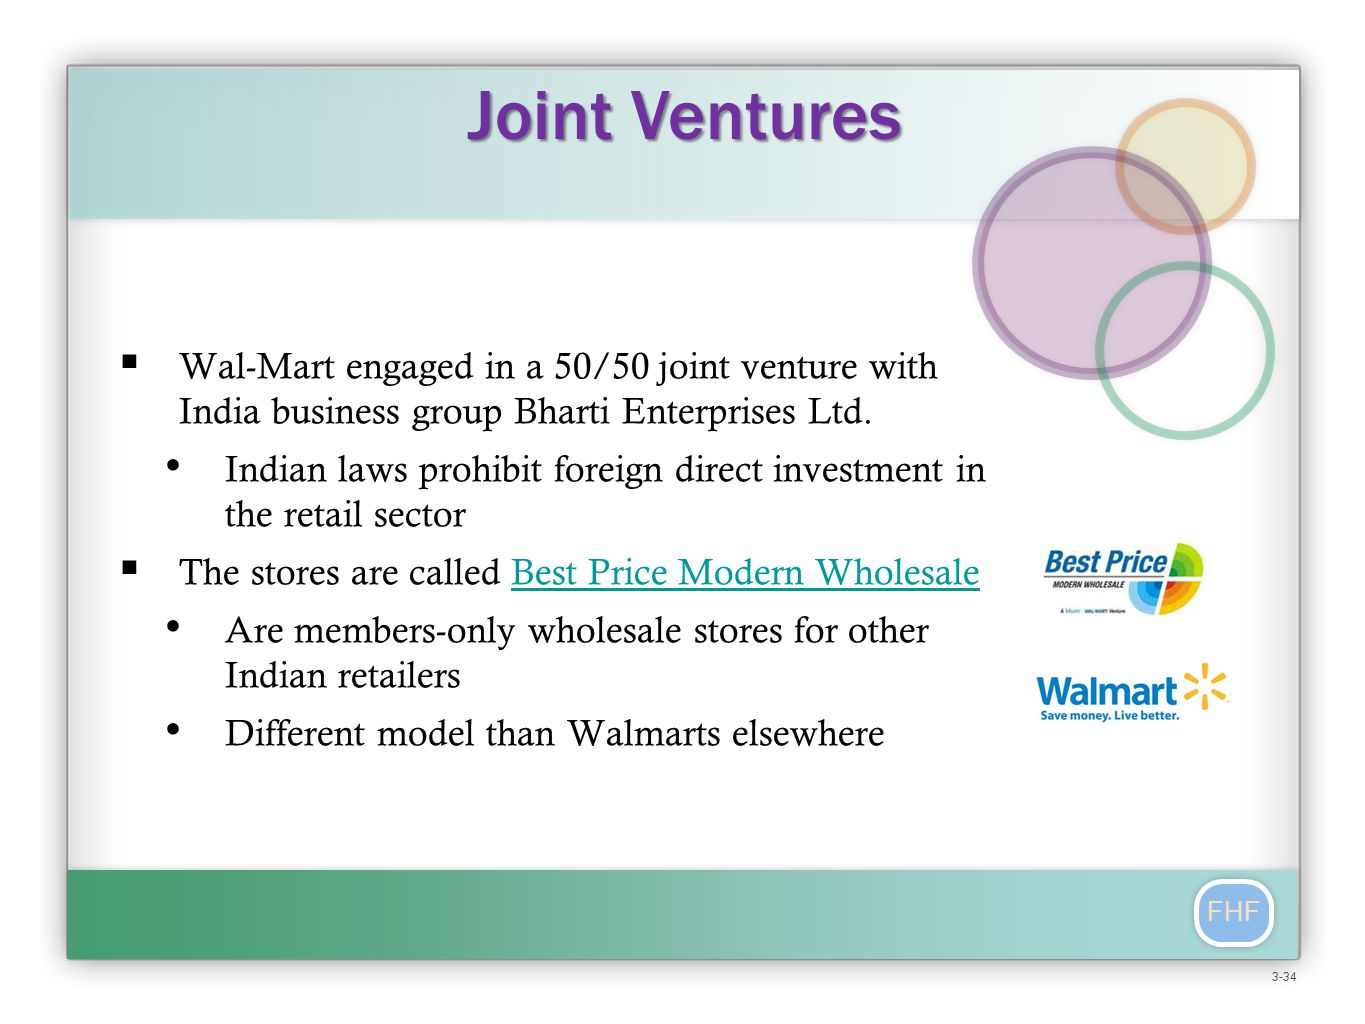 FHF  Wal-Mart engaged in a 50/50 joint venture with India business group Bharti Enterprises Ltd.